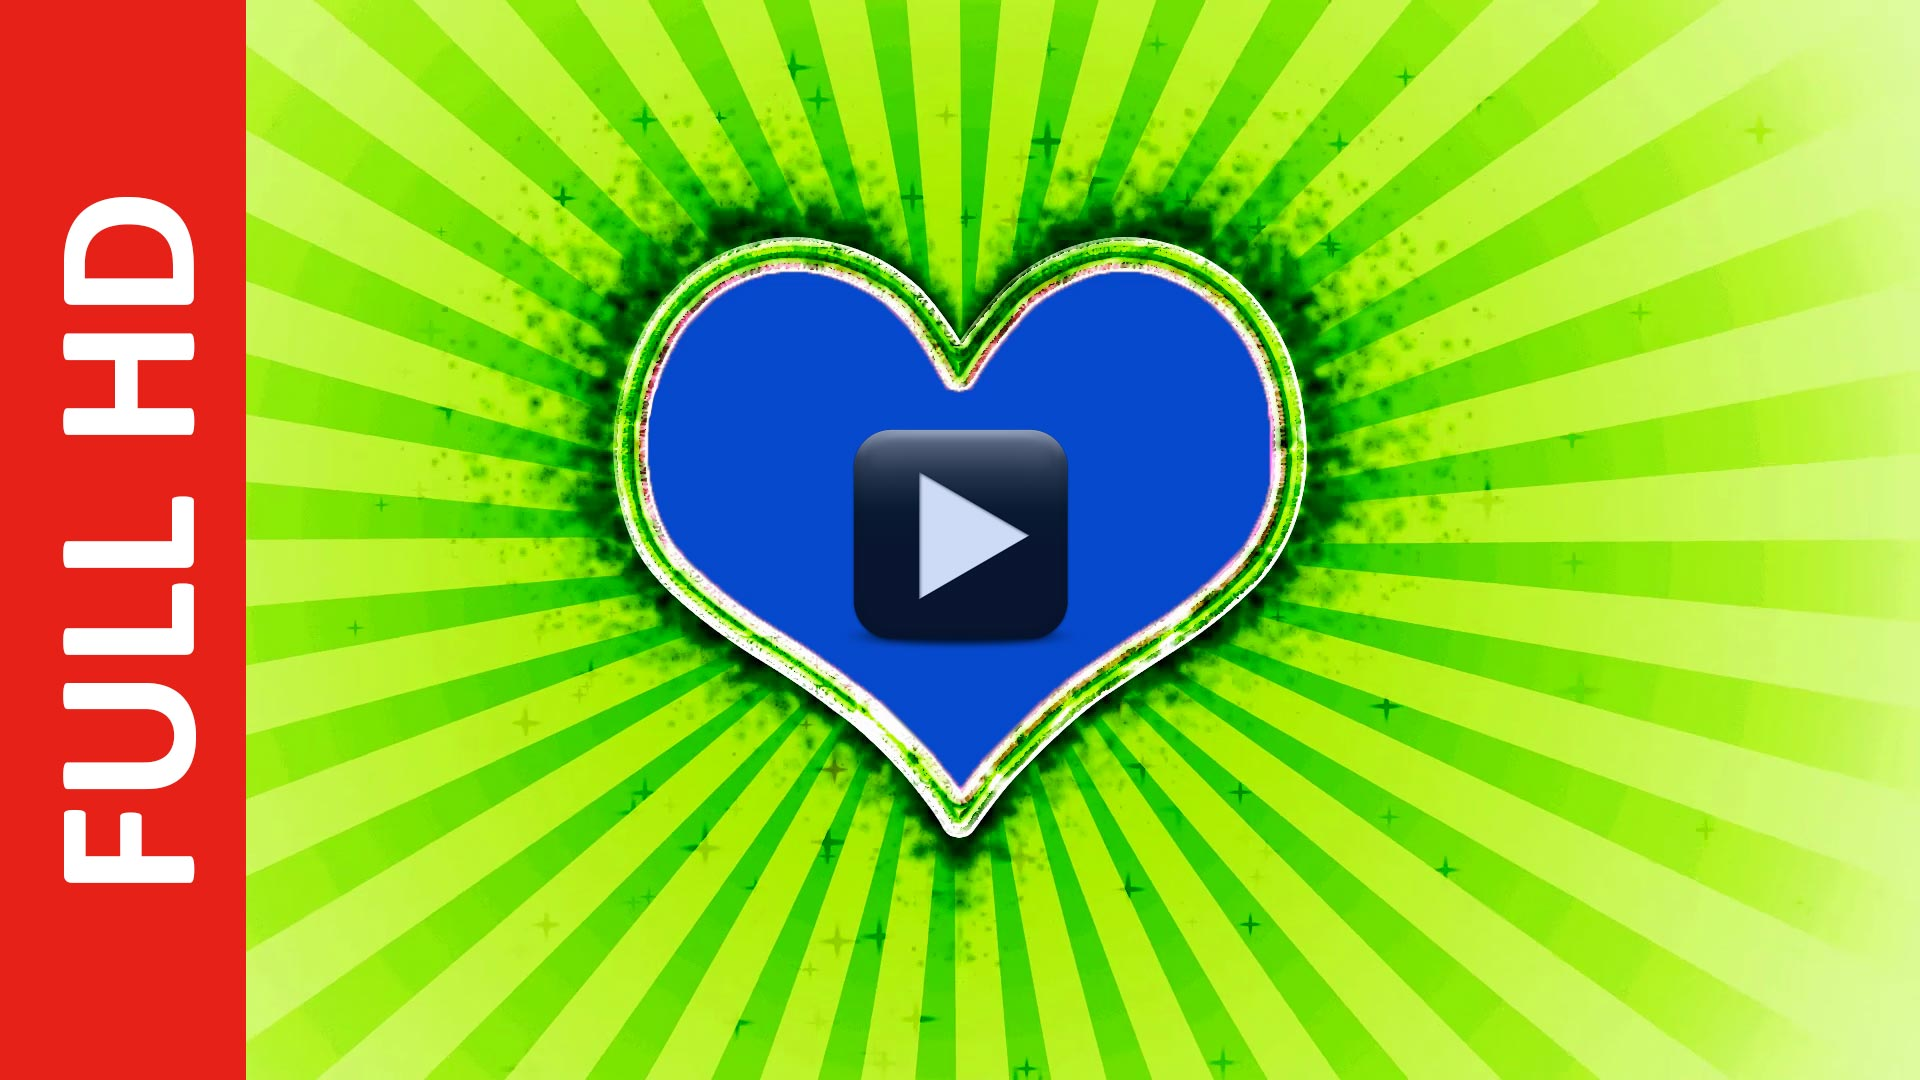 Wedding Love Frame Green And Blue Mat Screen Background Effect Hd